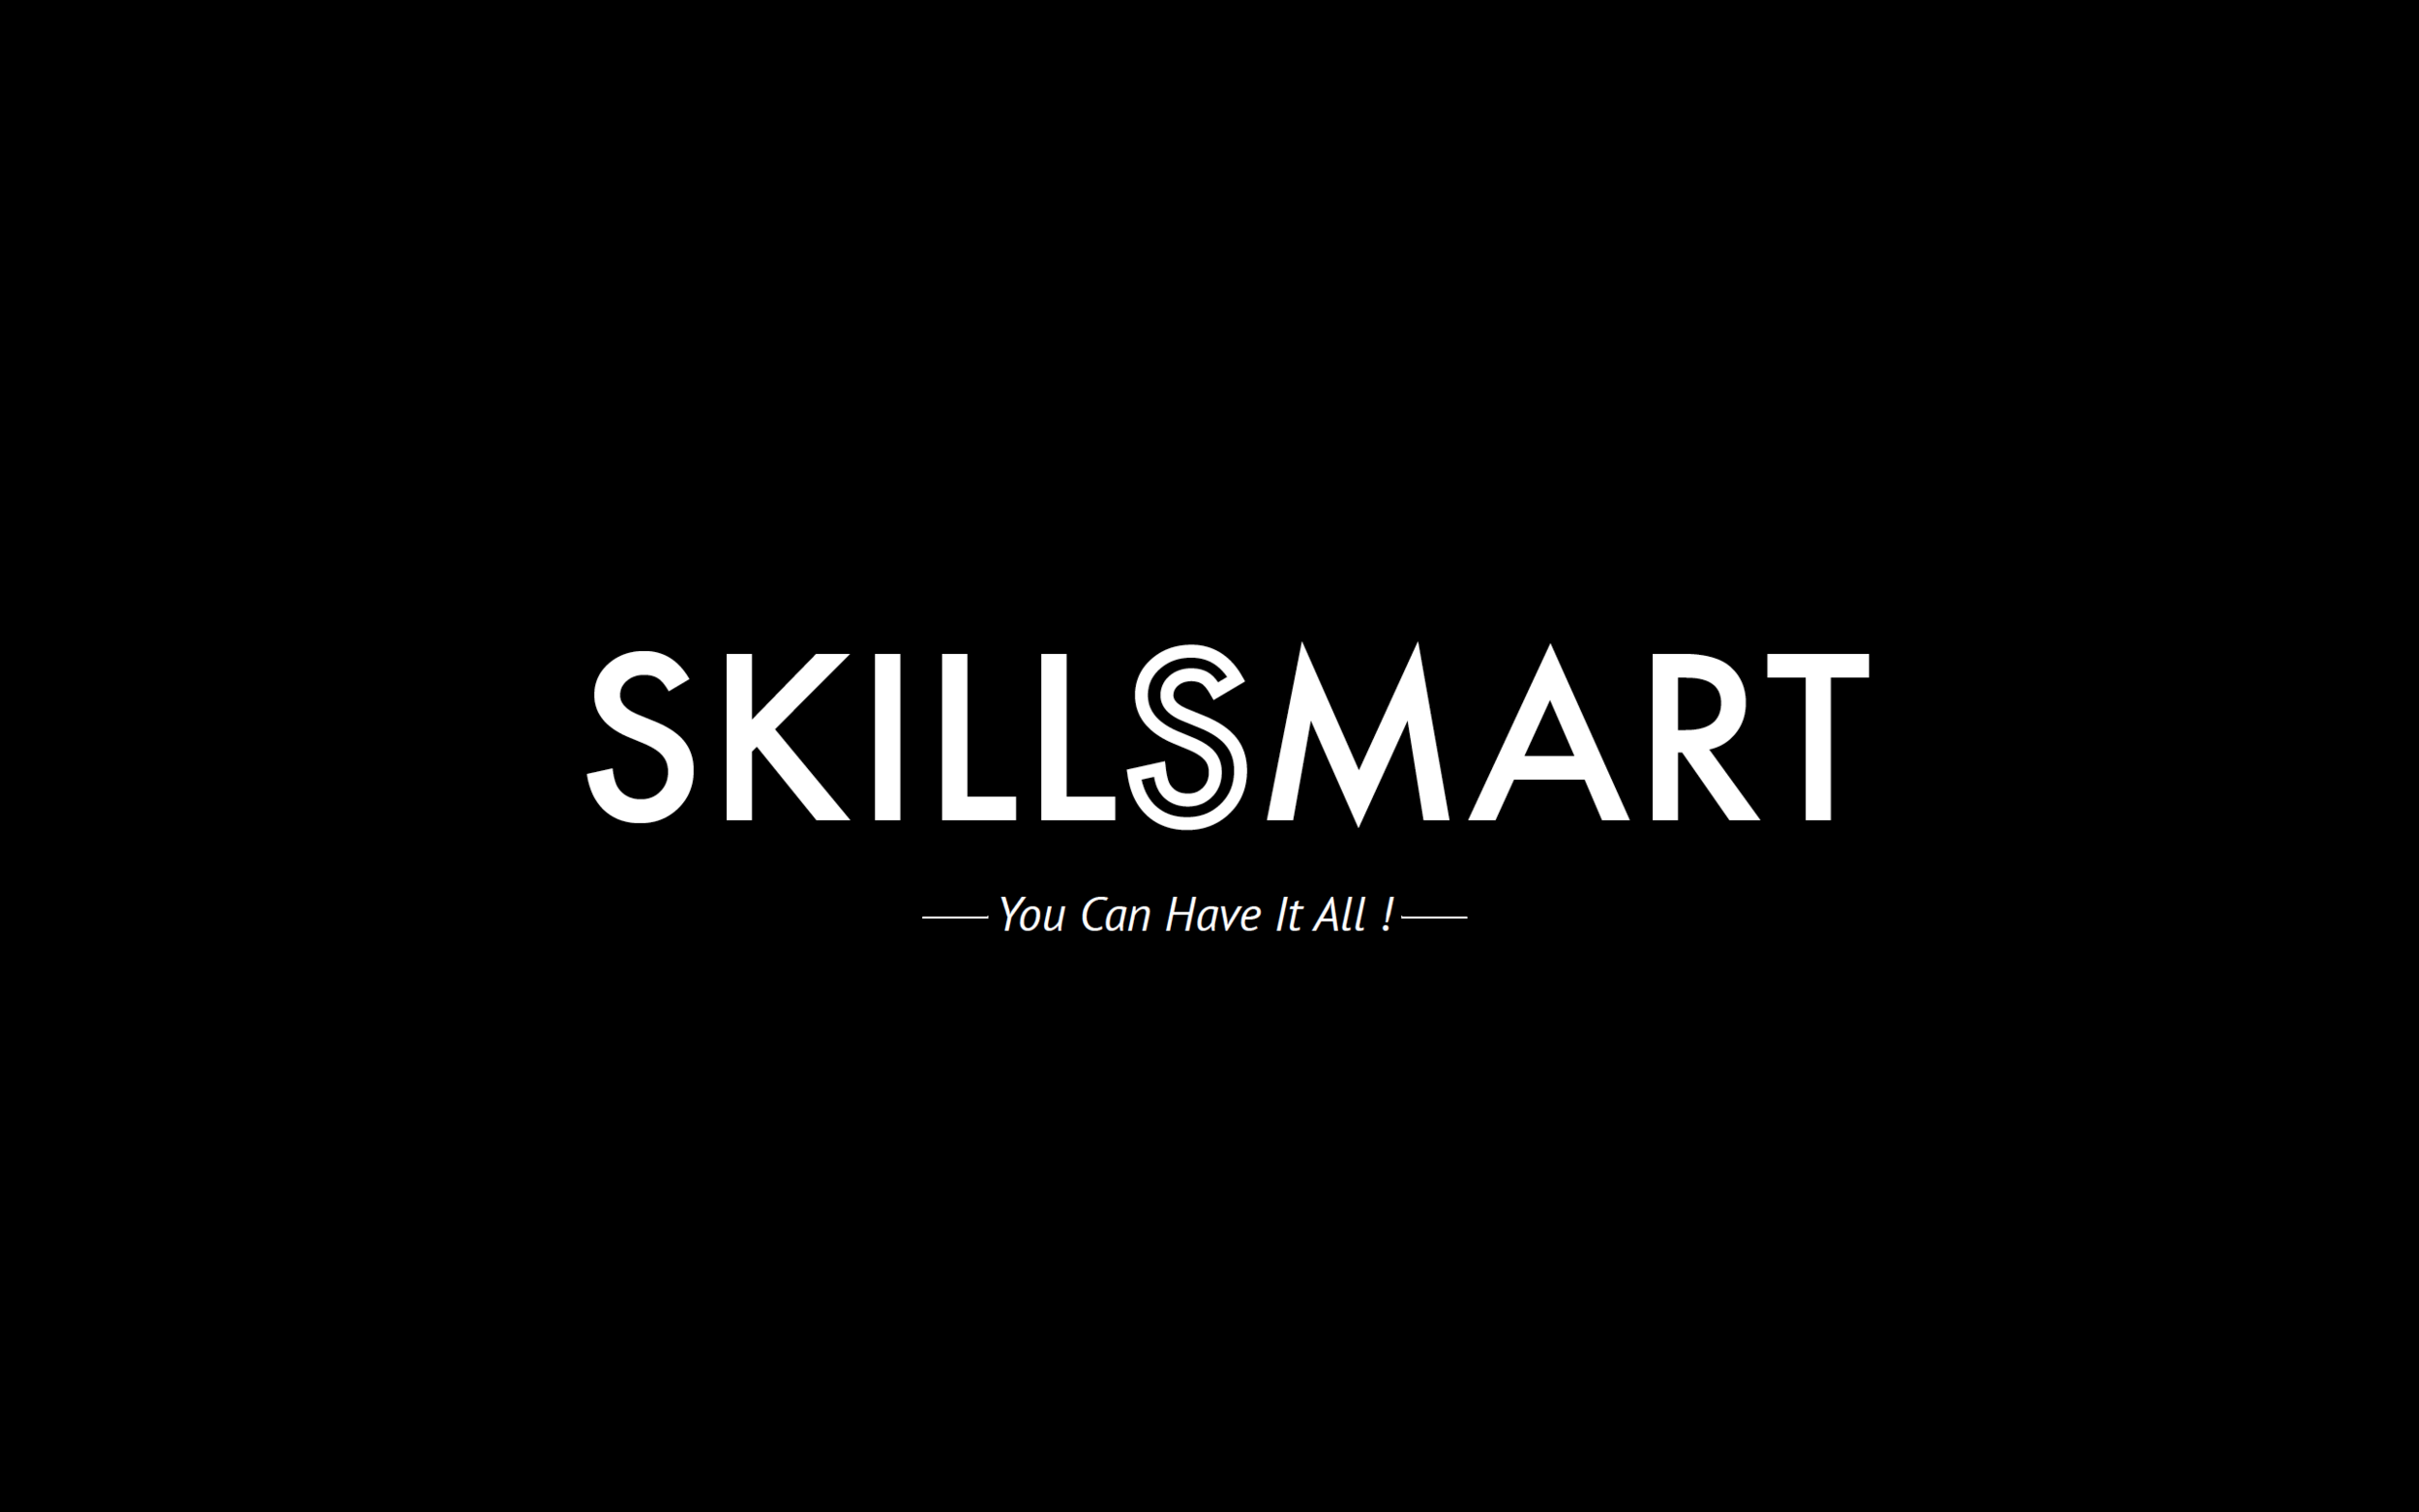 Skillsmart is a company concept that aids students and business owners to trade different design skills. Services are found and provided through the Skillsmart website where a large database of works and services are stored.